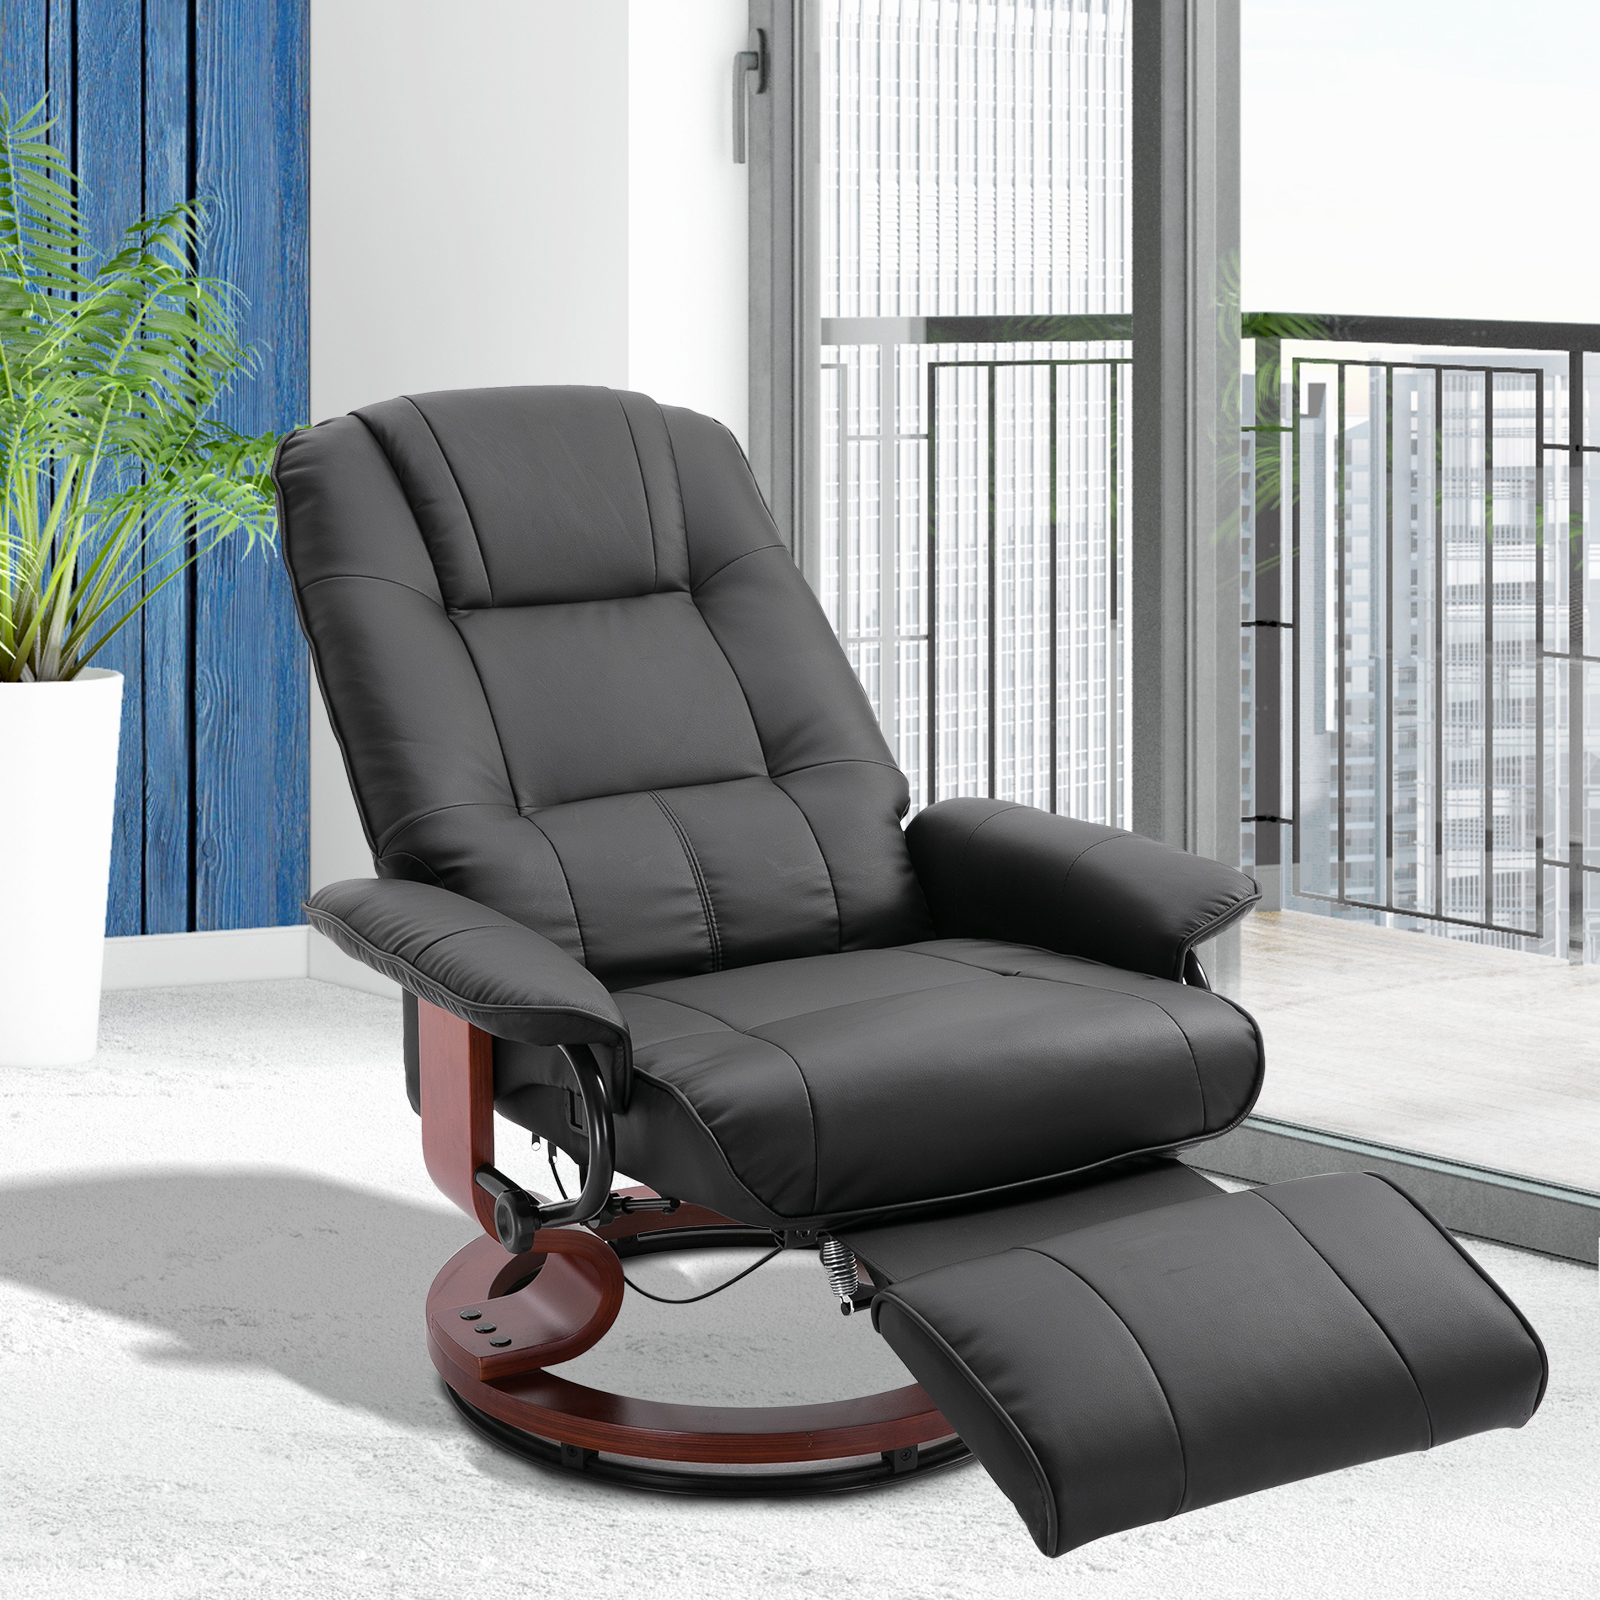 Details about Faux Leather Adjustable Traditional Manual Swivel Recliner Chair Ottoman Black